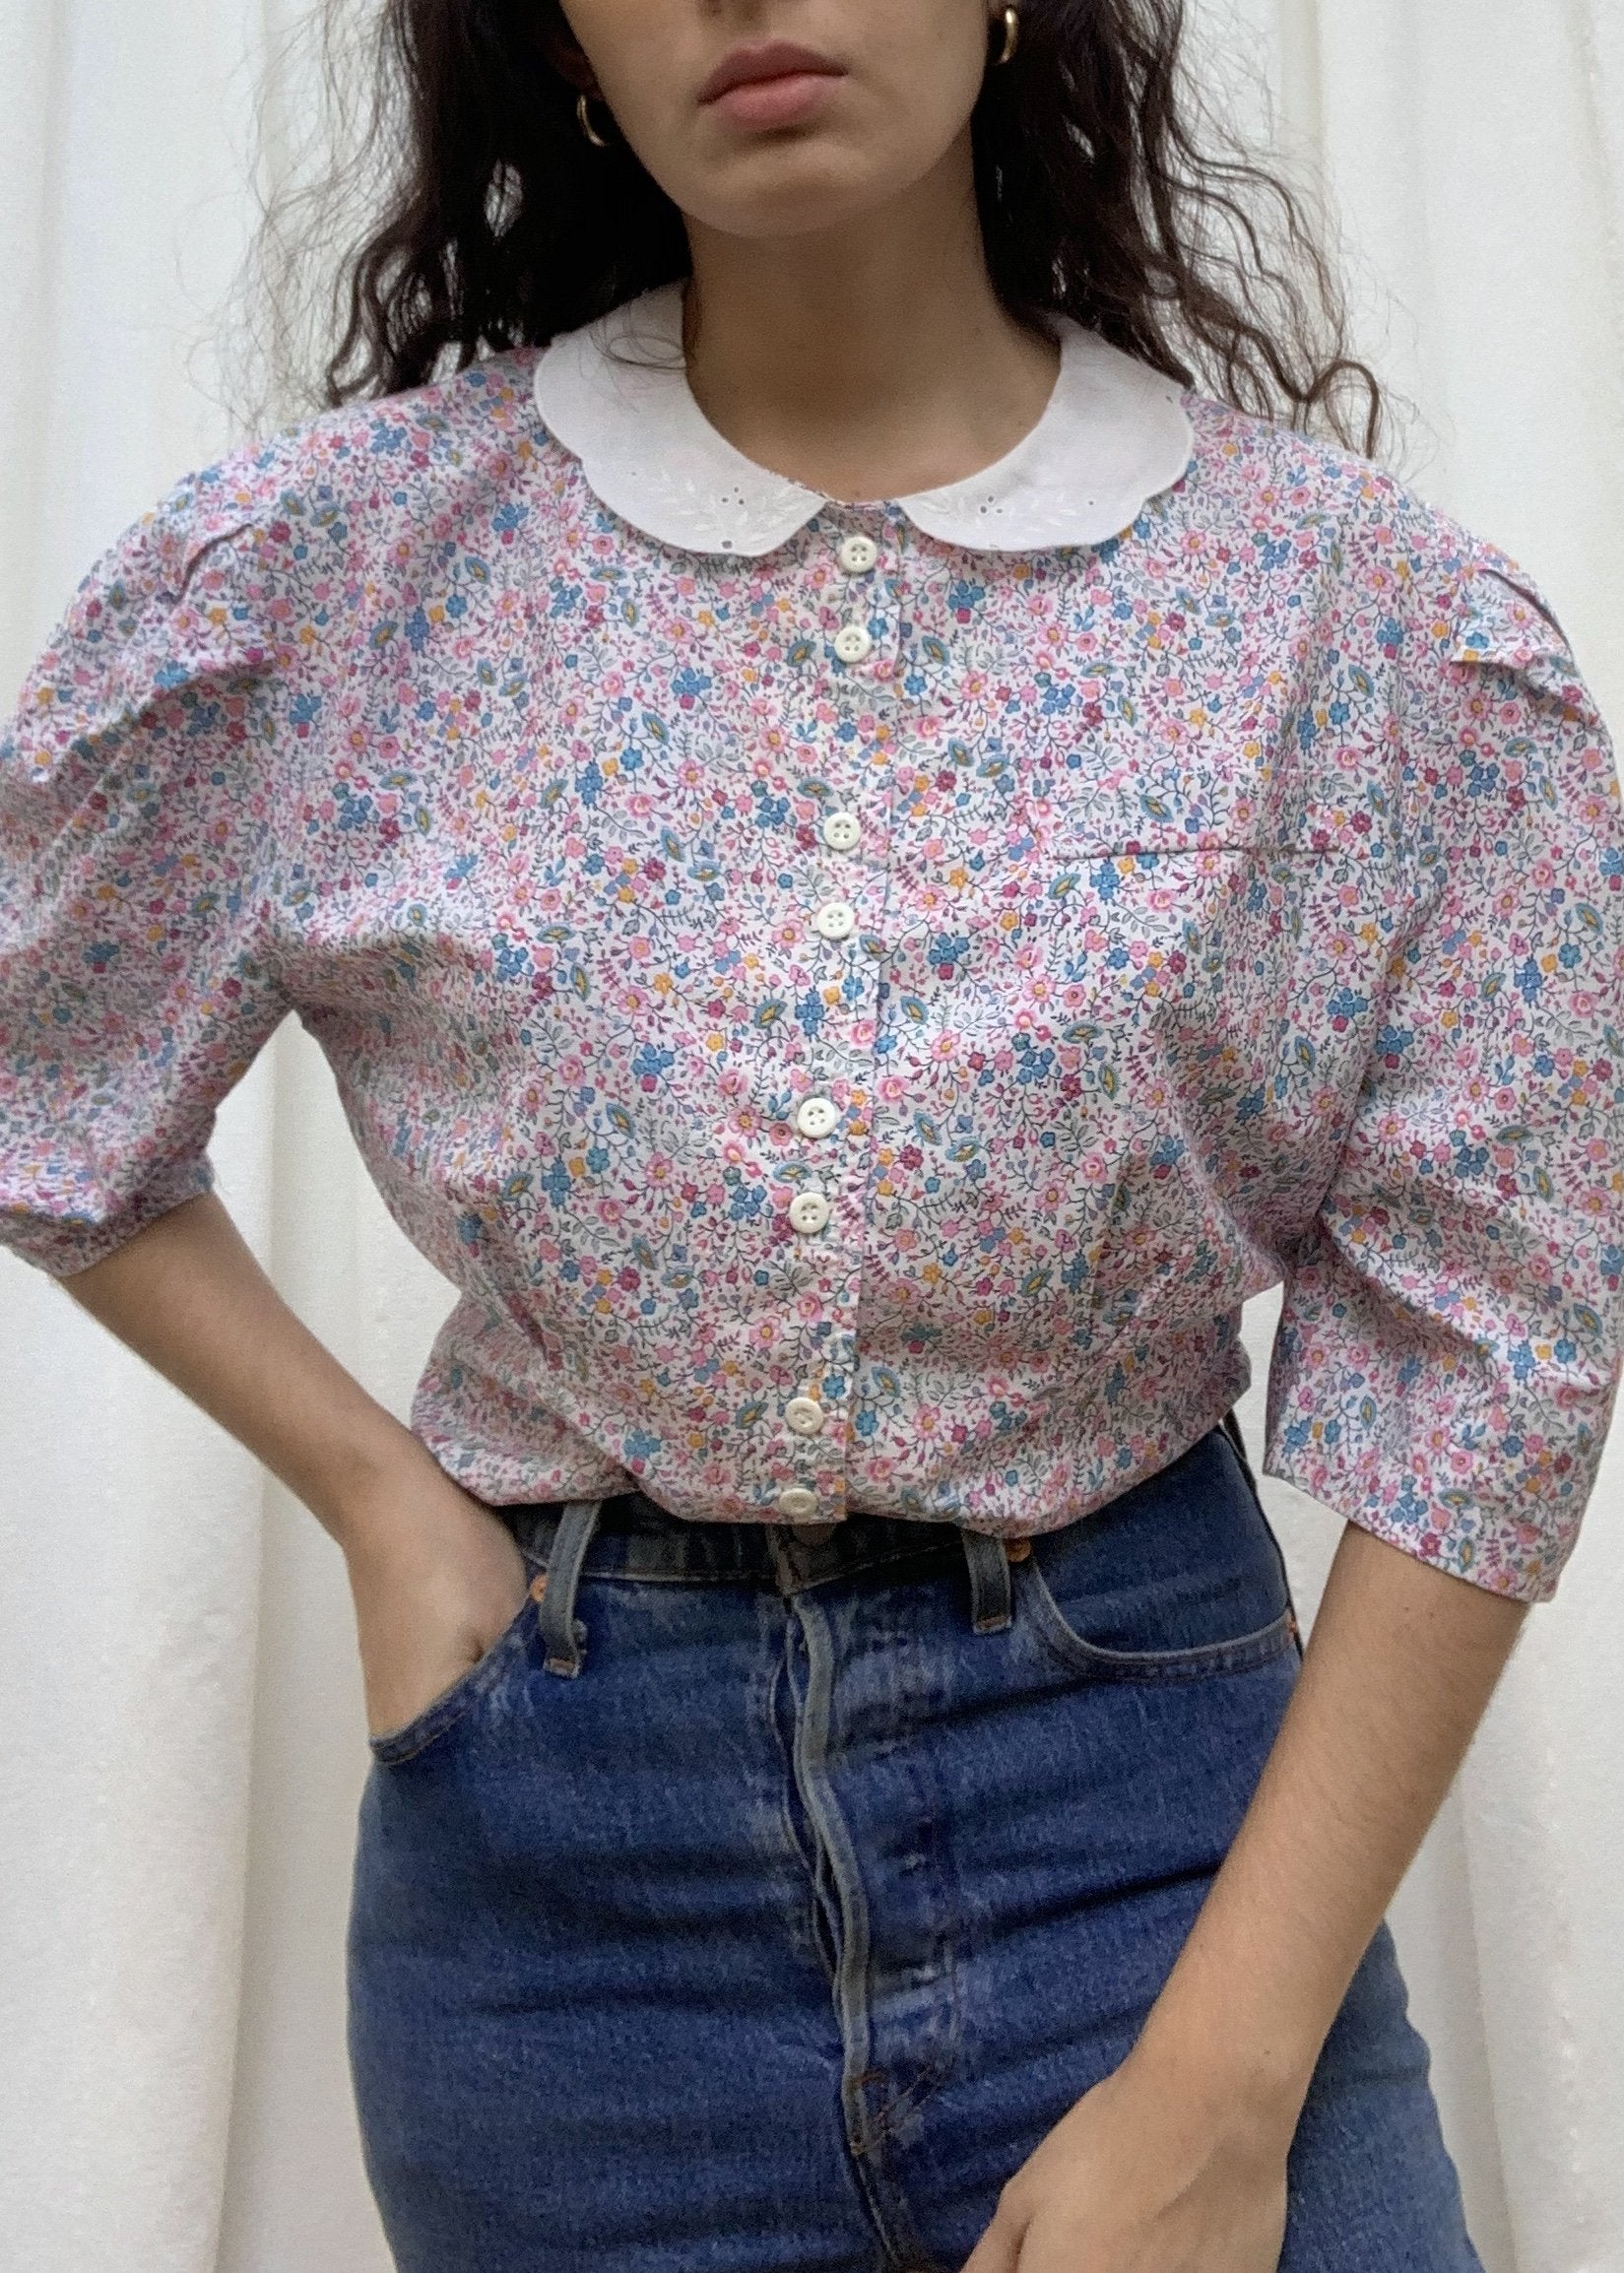 Suit of Lights Floral Puff Sleeve Colored Blouse 6